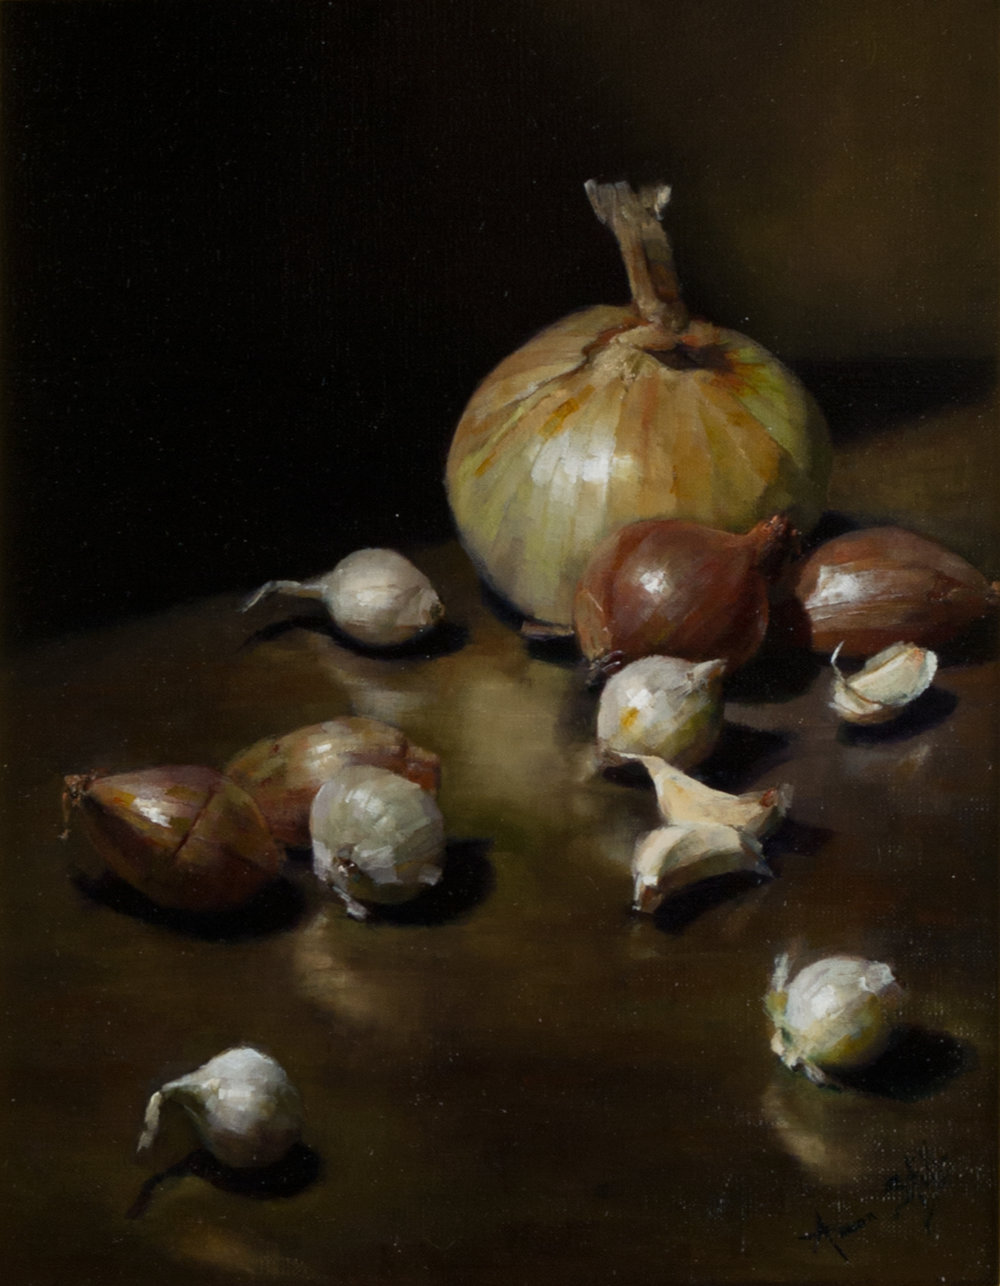 Aaron Stills (American, b. 1953) Garlic, Shallots, & Onions  /  Oil on Canvas  /  14 x 11  (in)